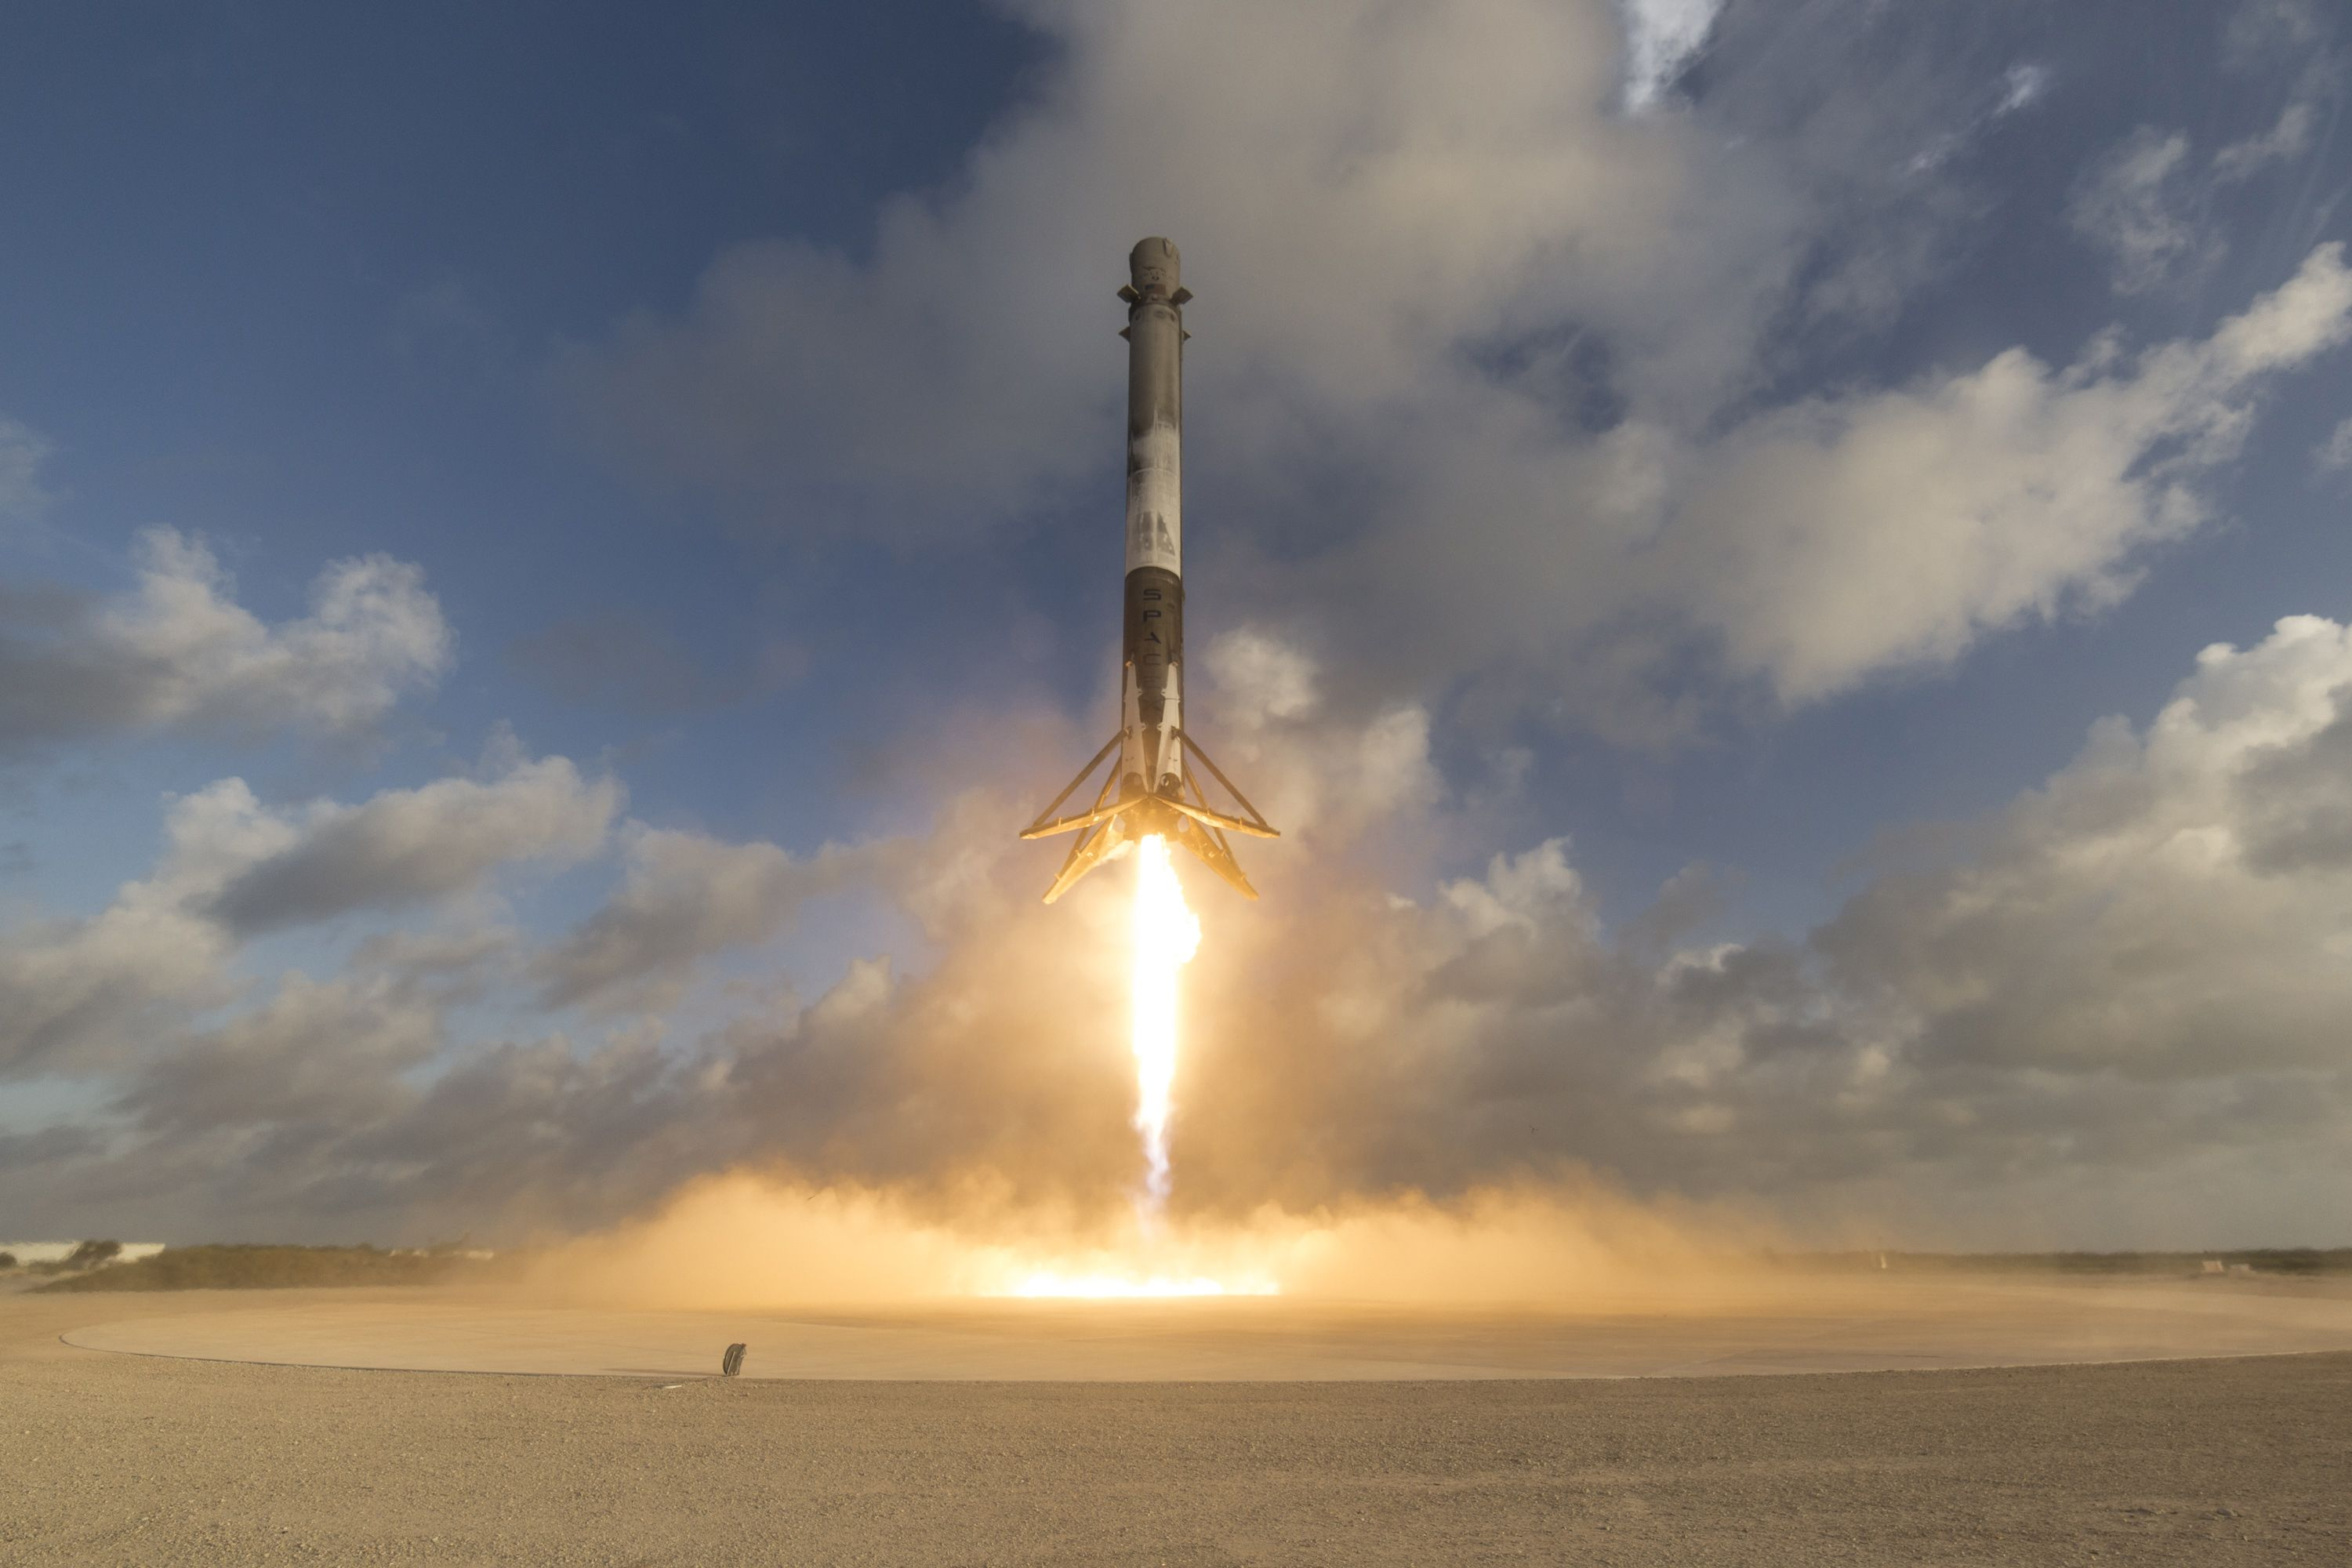 SpaceX Wants to Launch 30 Rockets in 2018